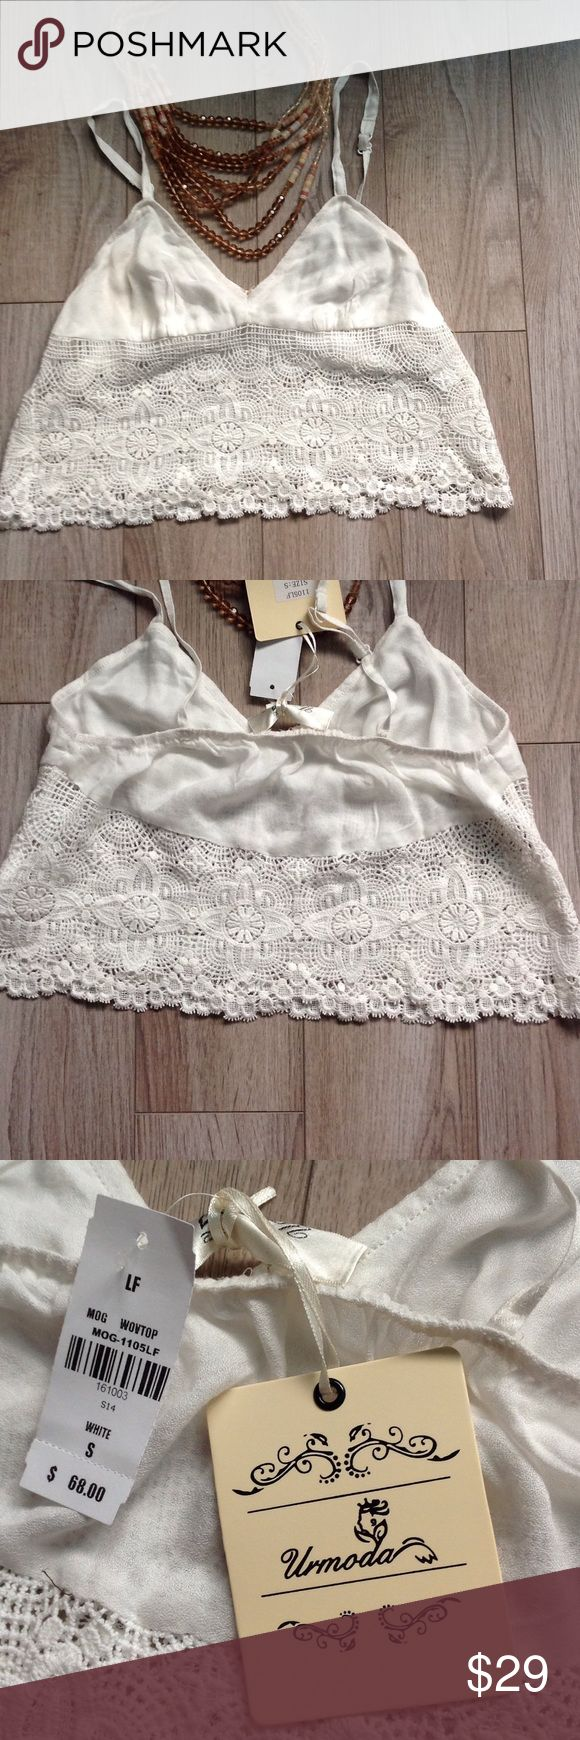 "Urmoda crop crochet cami Brand new with tags boutique item. Solid top with crochet bottom.  13"" across bust urmoda Tops Camisoles"